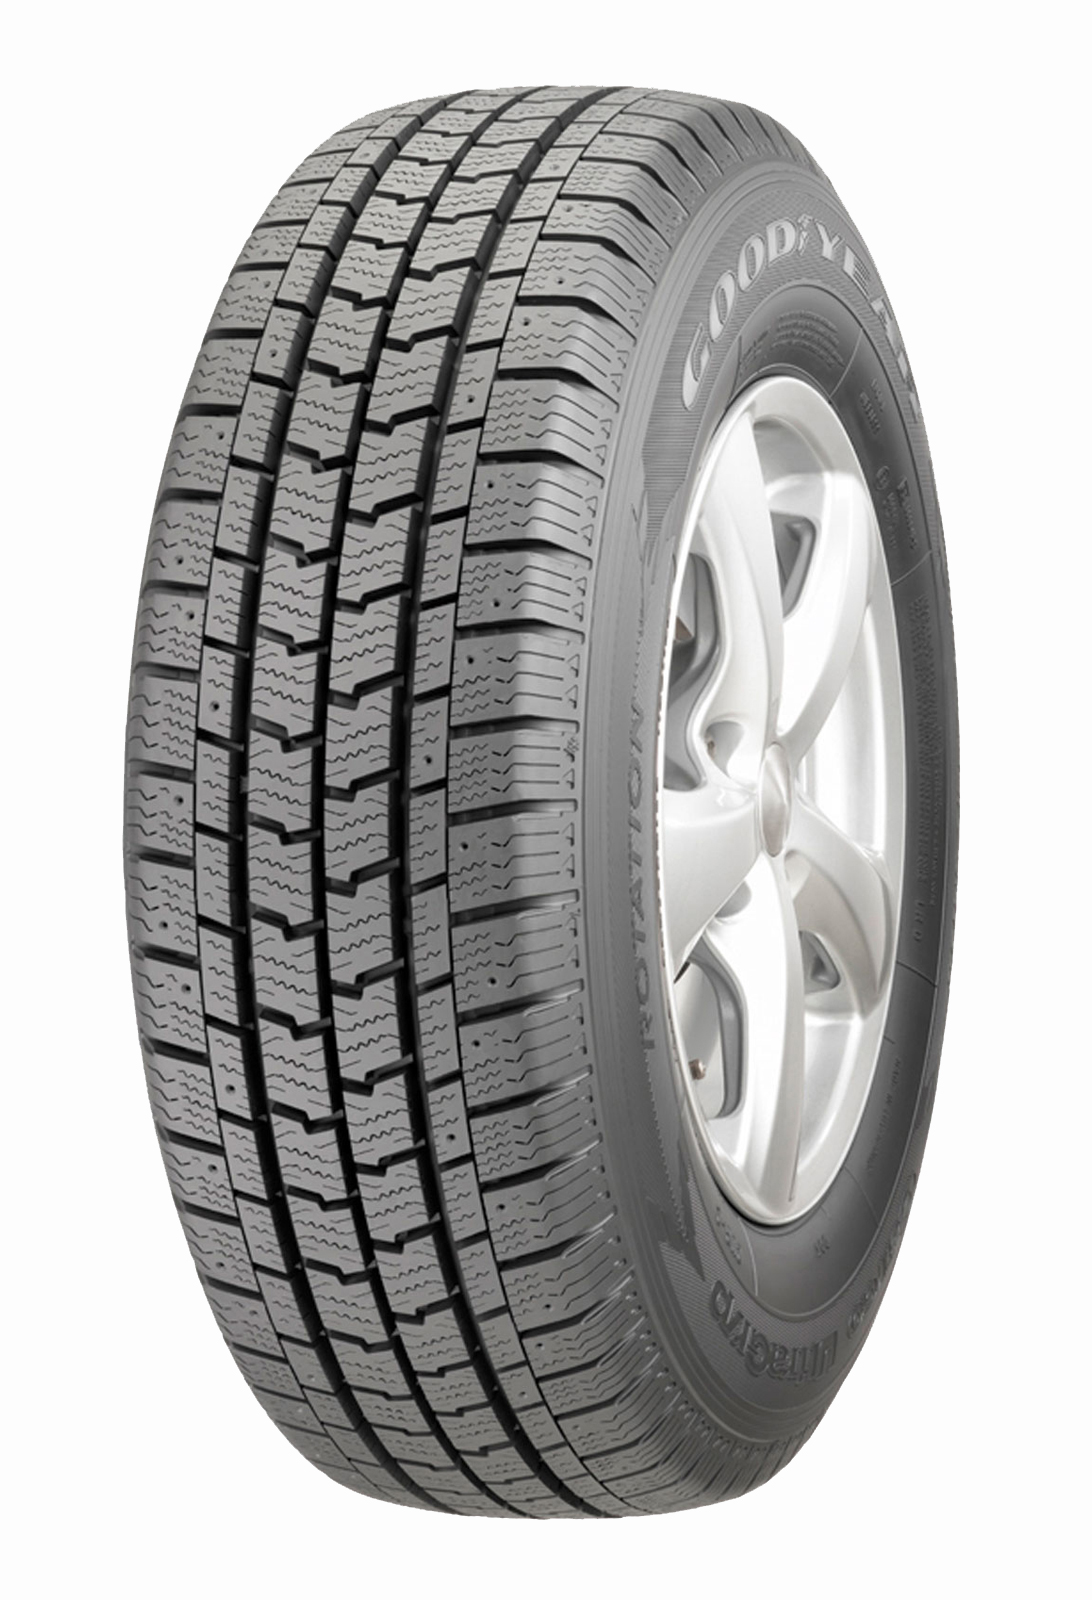 205/75R16C под/шип 110R Cargo Ultra Grip 2 GoodYear